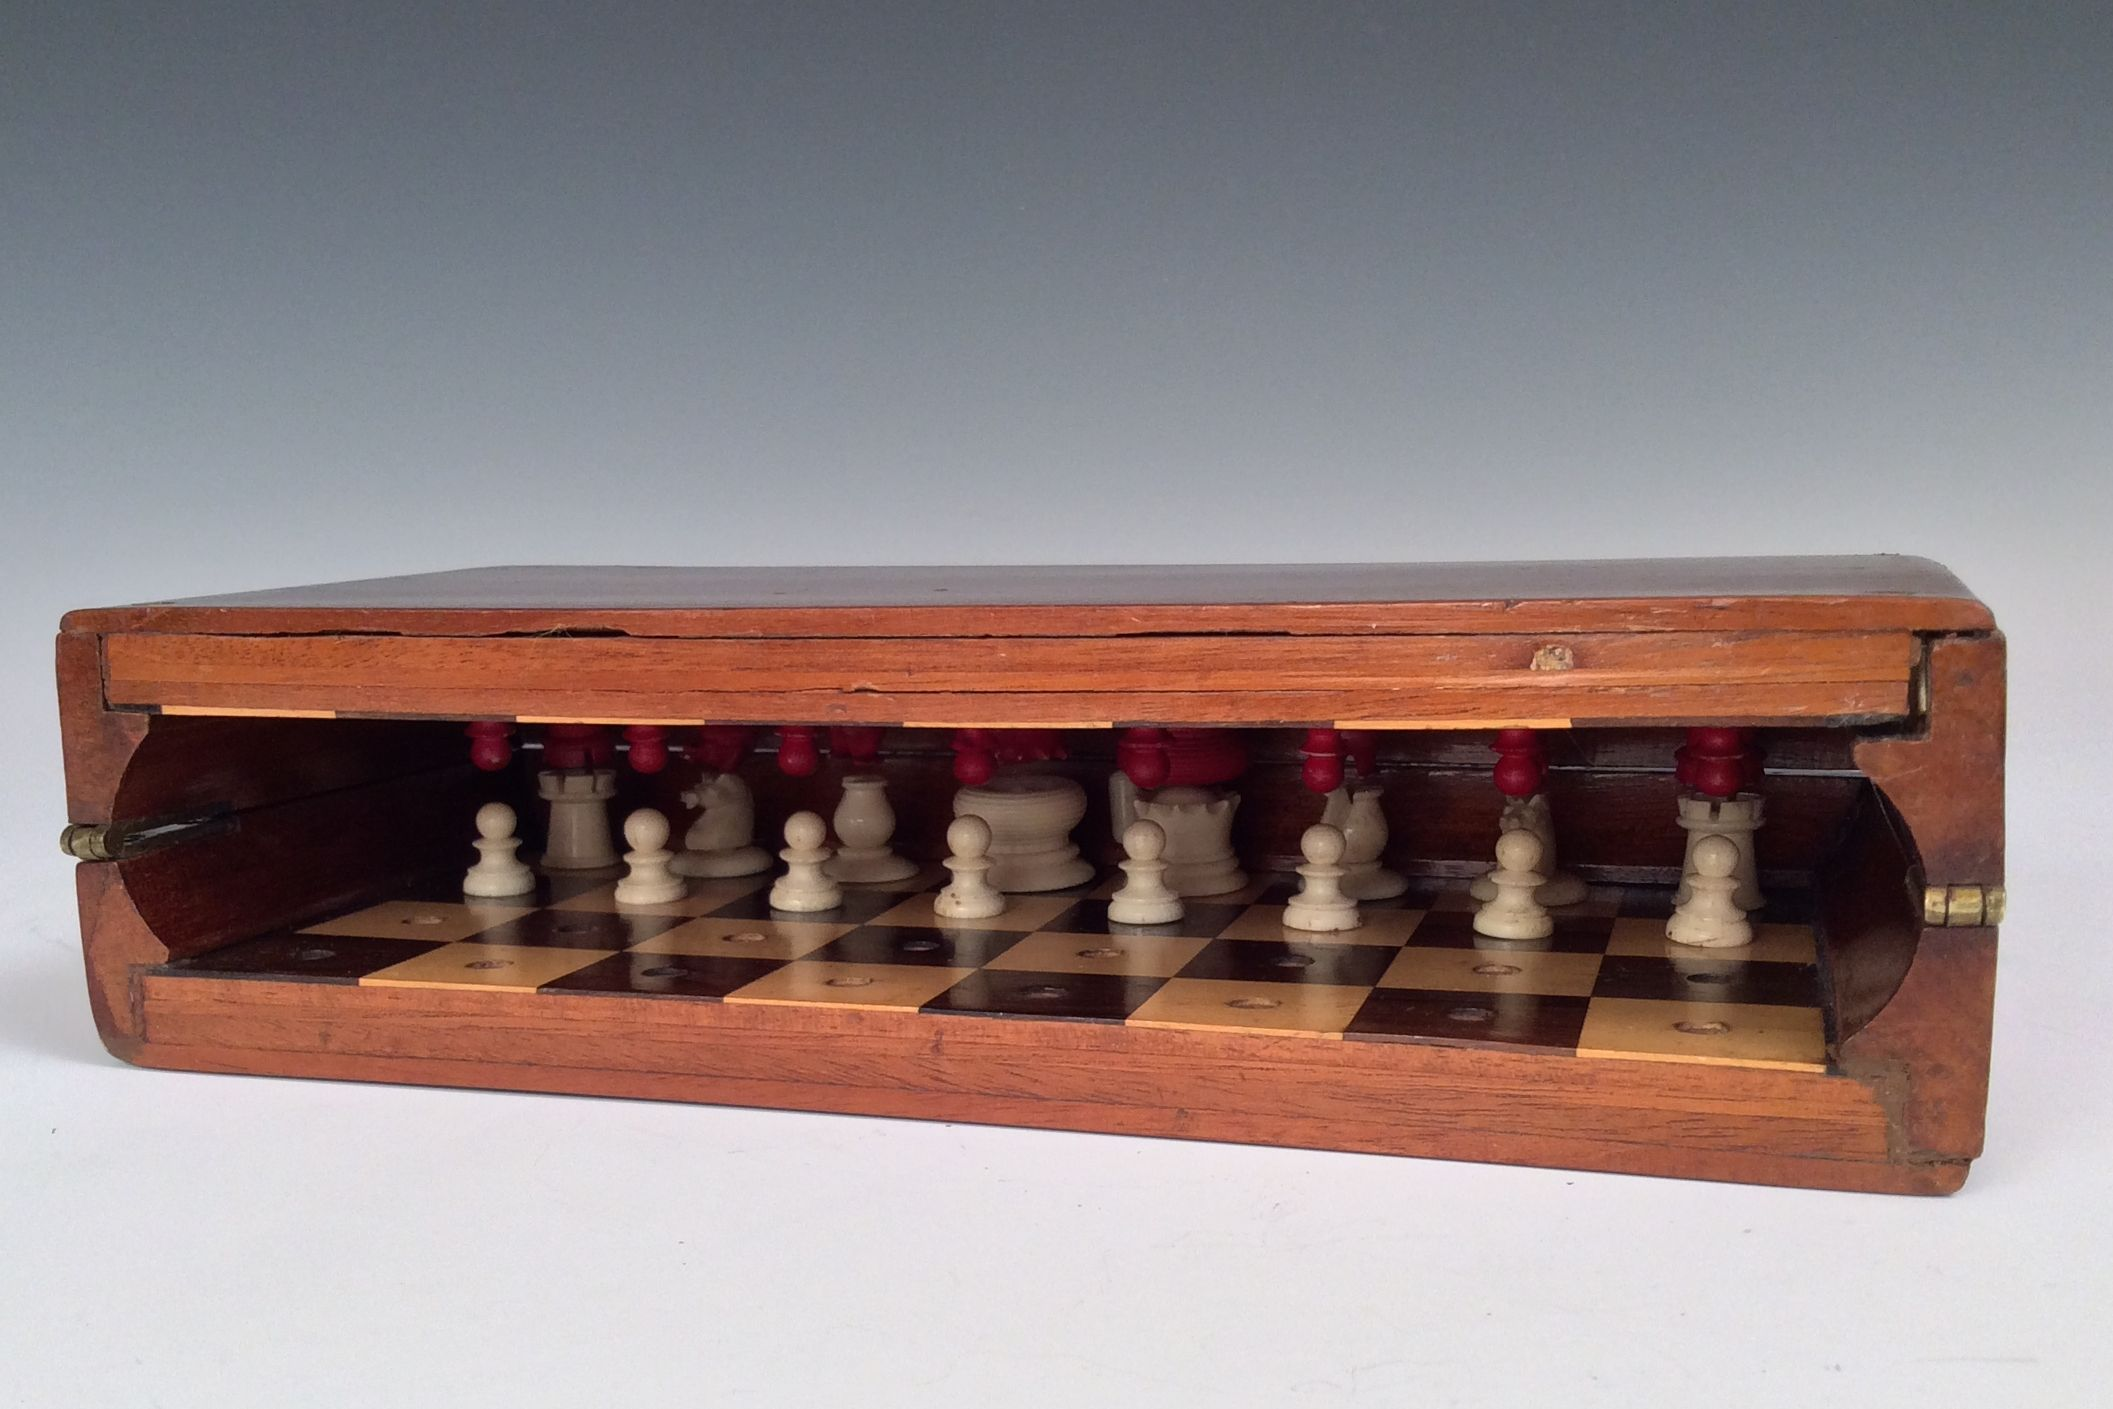 Antique Chess Sets A primer on identification and value